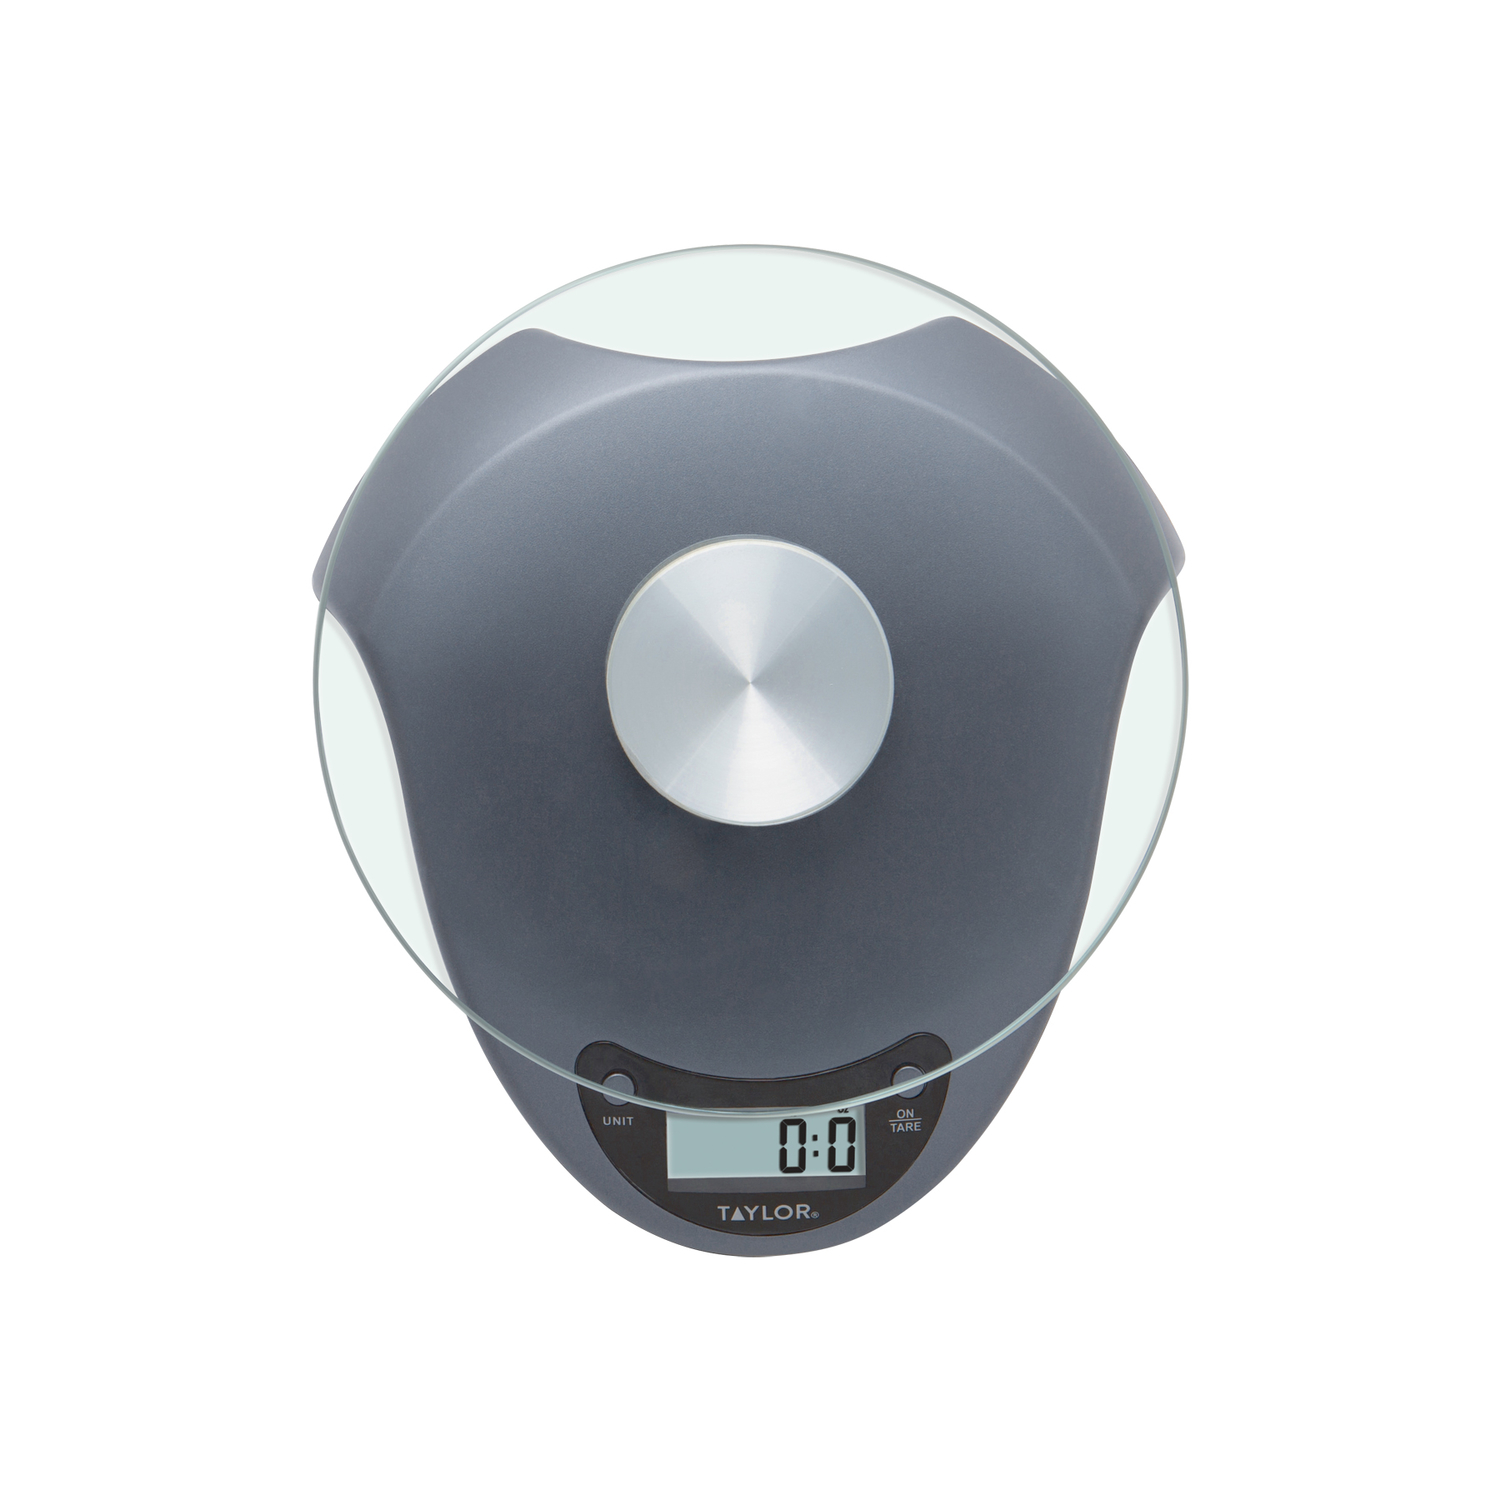 Taylor  Digital  Food Scale  6.6 Weight Capacity Silver